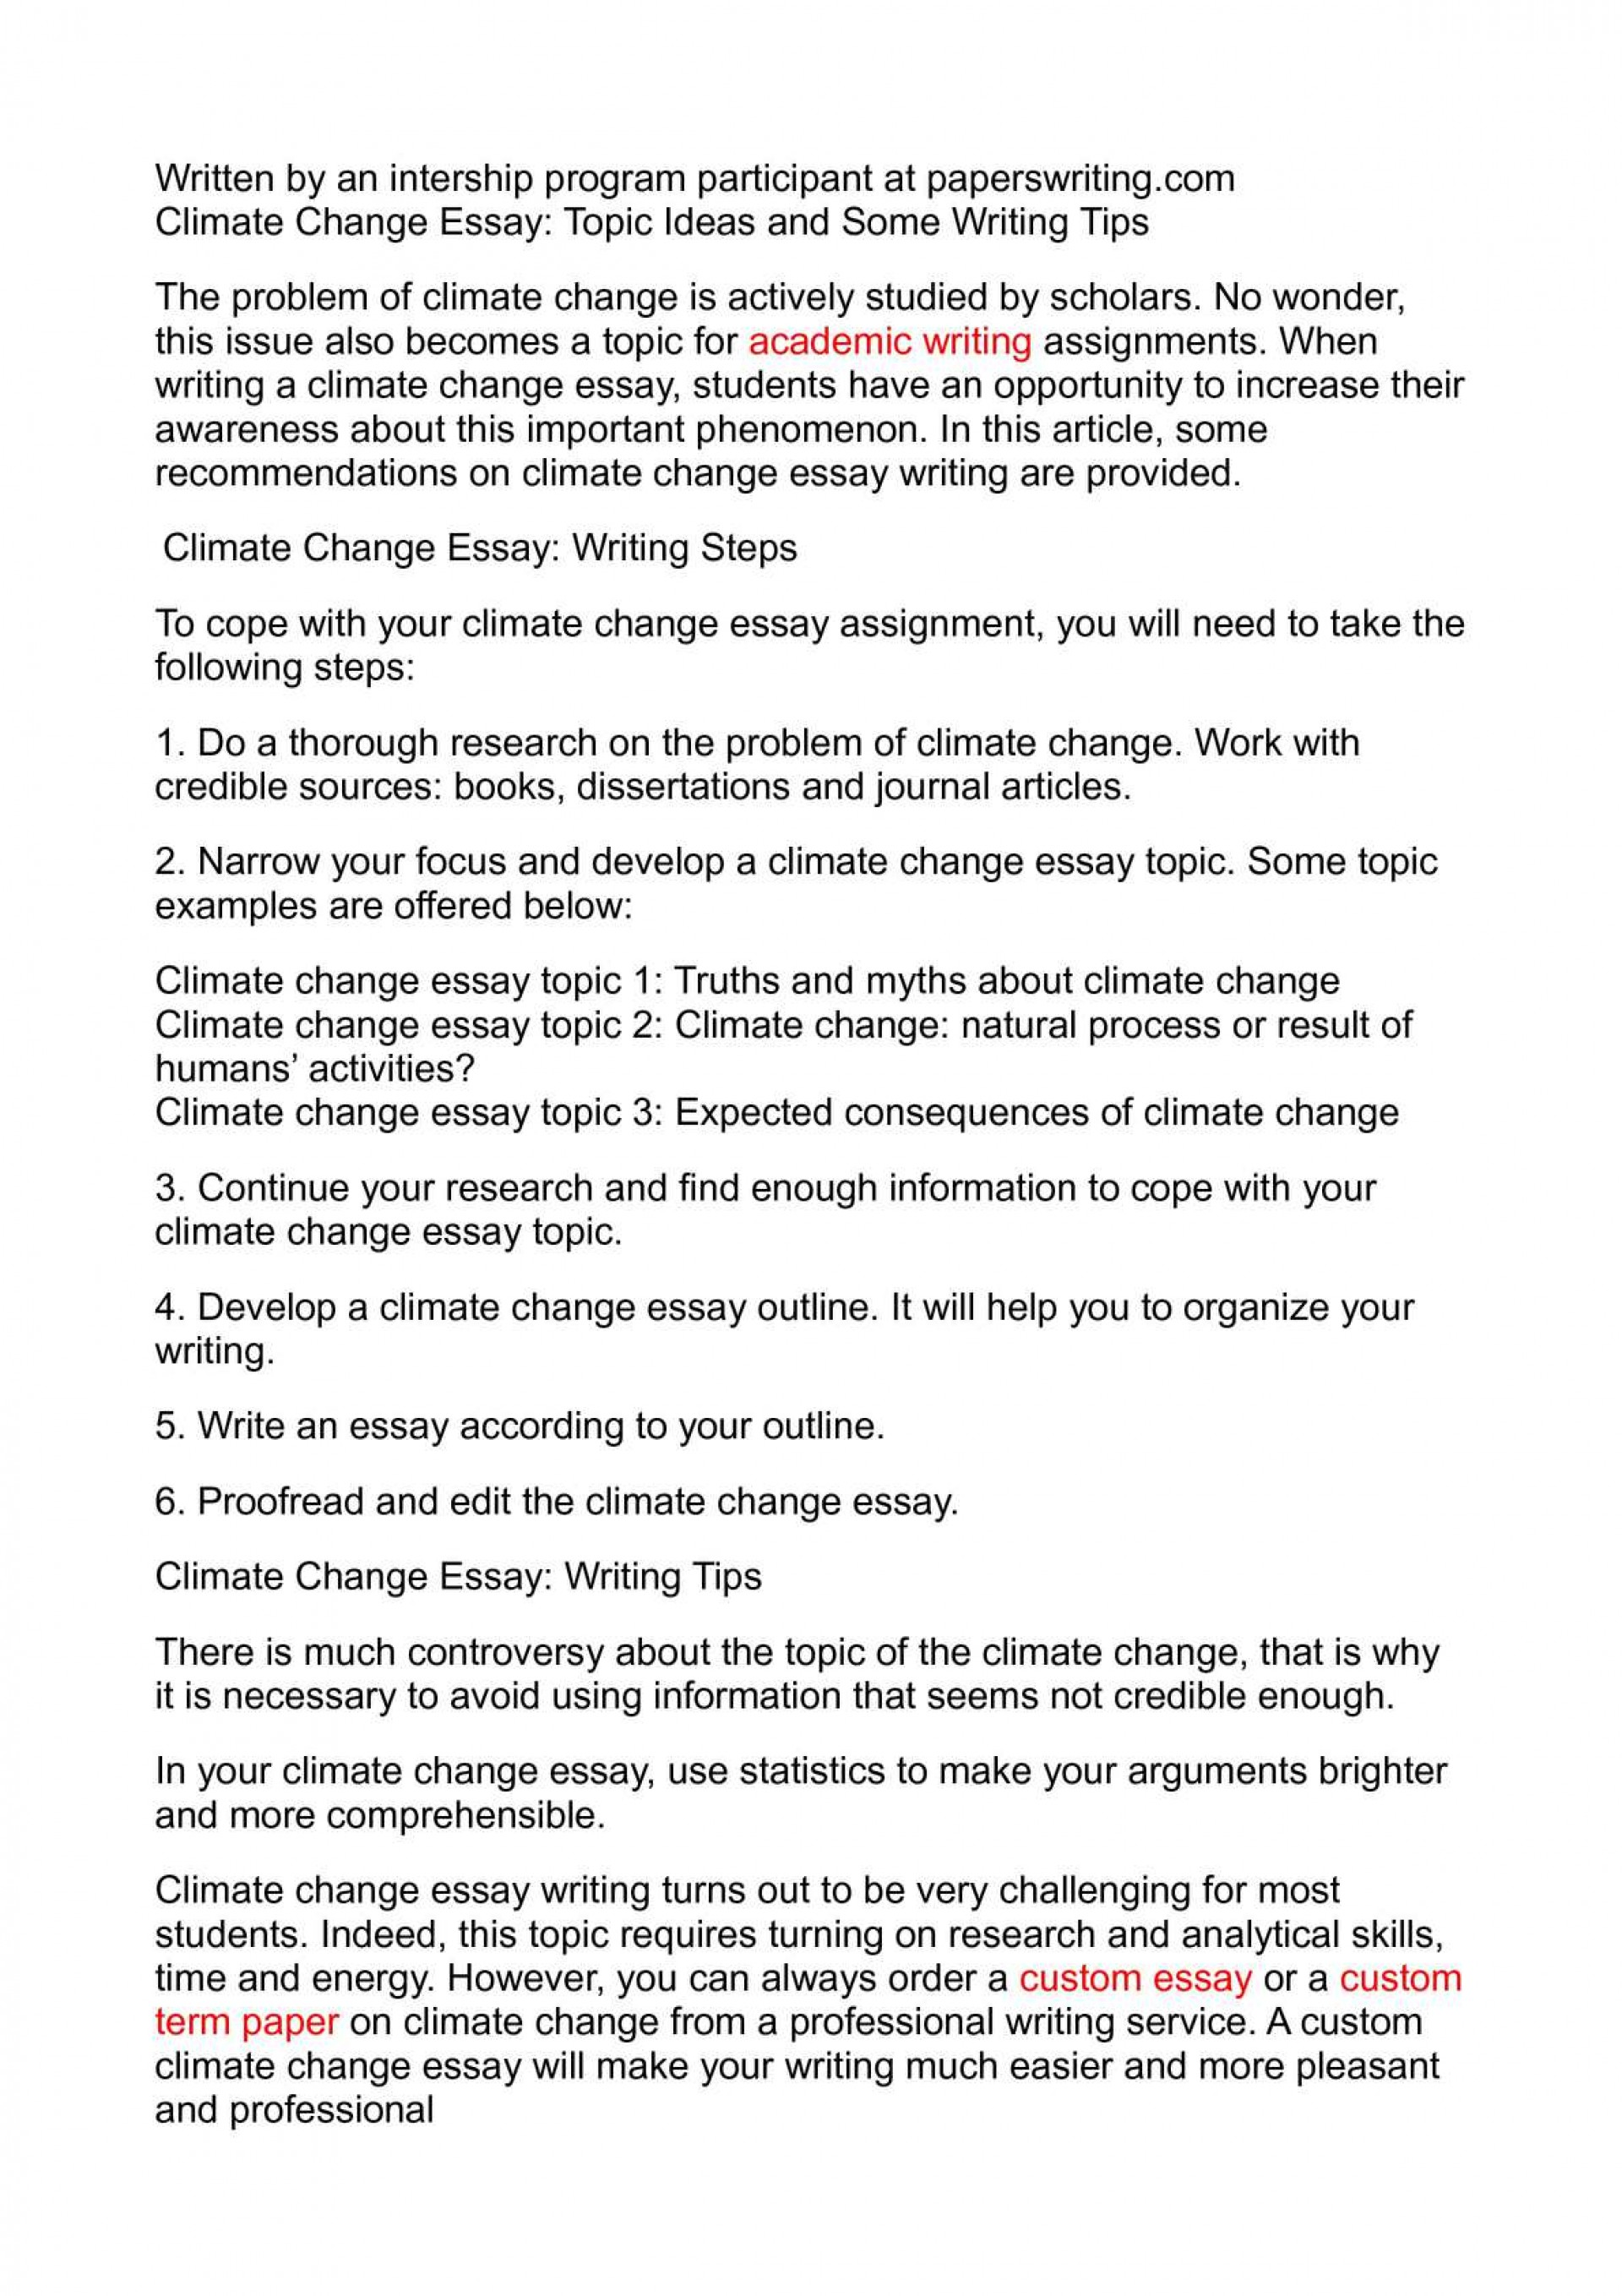 012 Climate Change Essay Topics Uncategorized Global Warming Topic Ways To St Oracleboss Research Paper20 Paper Unusual Ideas Activities For High School Students Unique History Developmental Psychology 1920